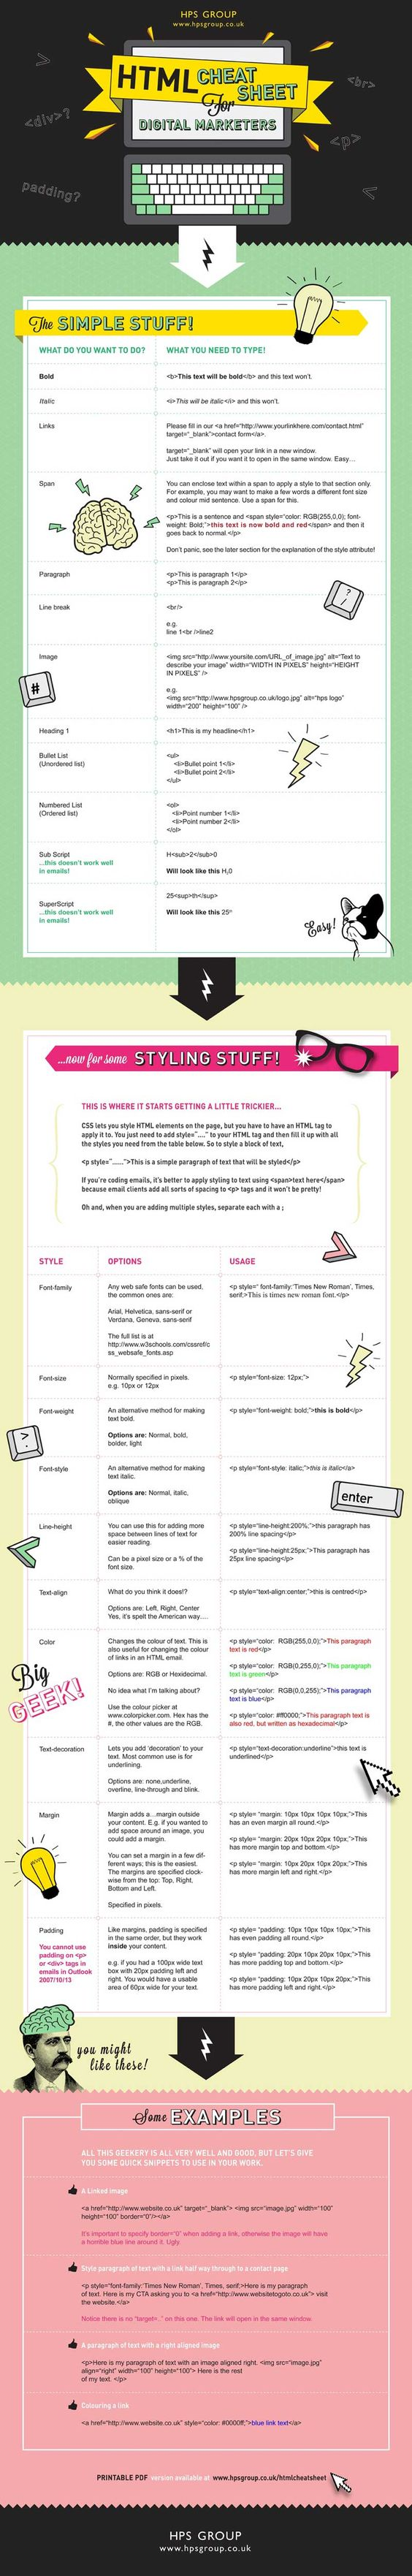 Are you a #b2bmarketer who sets up their own digital campaigns? Use this cheat HTML cheat sheet to help you along the way! [INFOGRAPHIC]